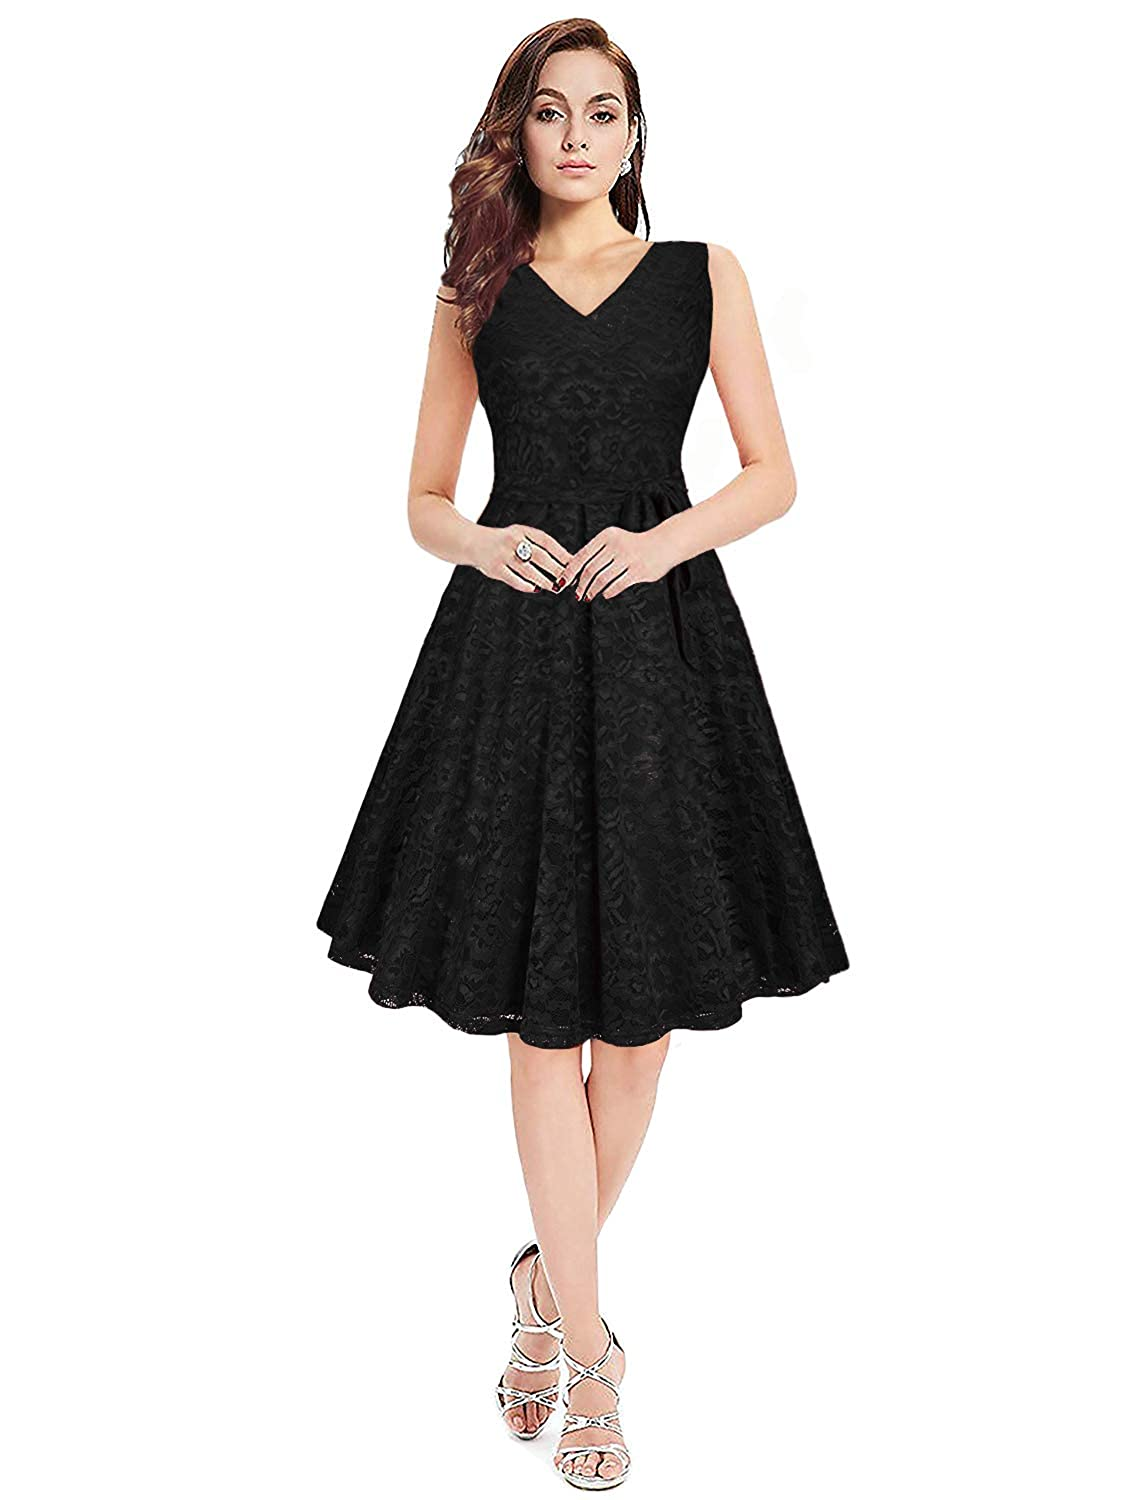 Siddhi Enterprise A-line Midi Dresses For Women Western Wear Skater Dress ( Black)  Amazon.in  Clothing   Accessories 3fbf4e8d2